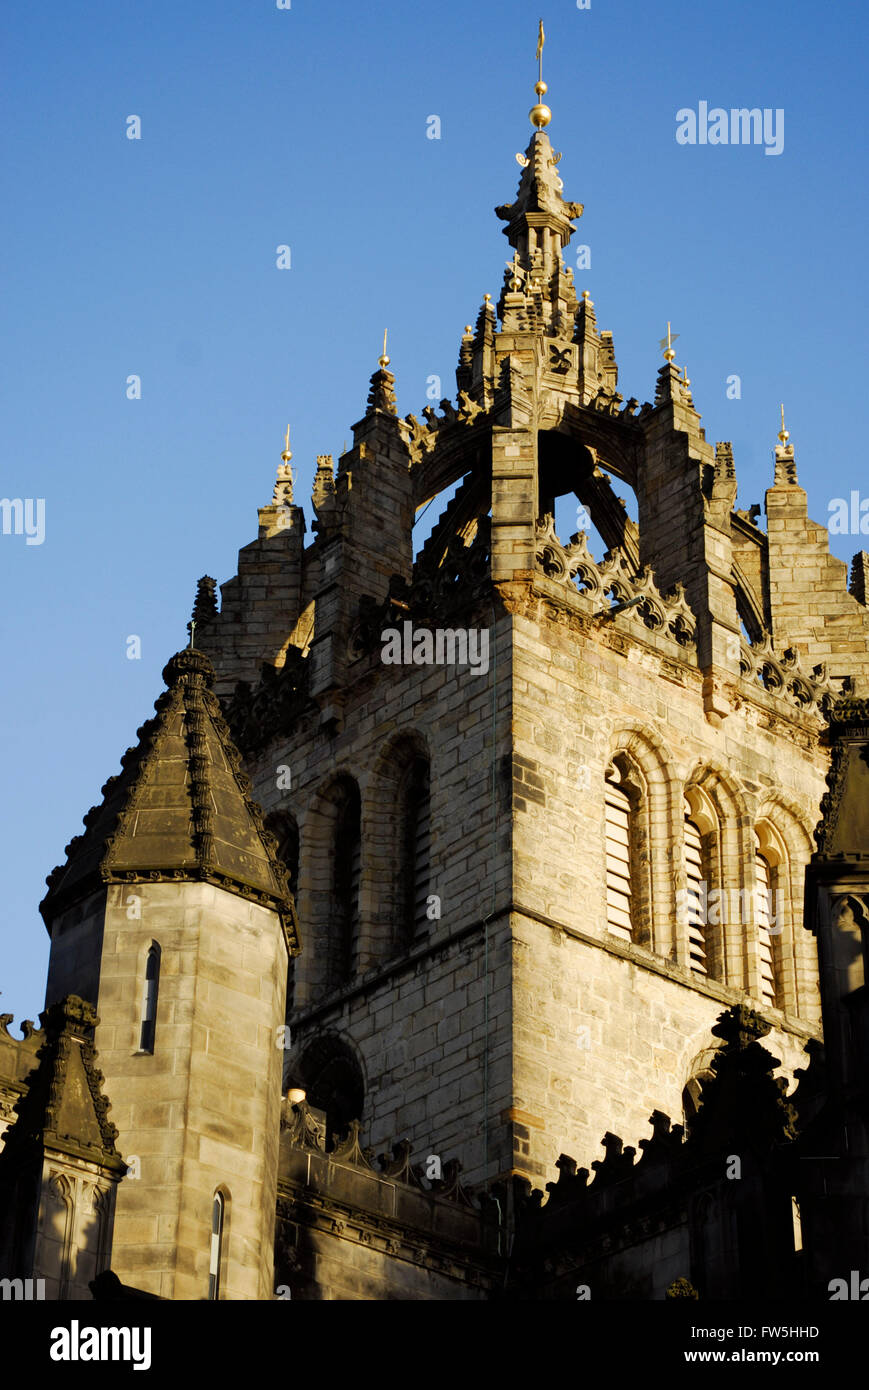 St. Giles Cathedral, High Kirk, Edinburgh, Scotland, cathedral spire: the Crown of Scotland, The Royal Mile, - Stock Image